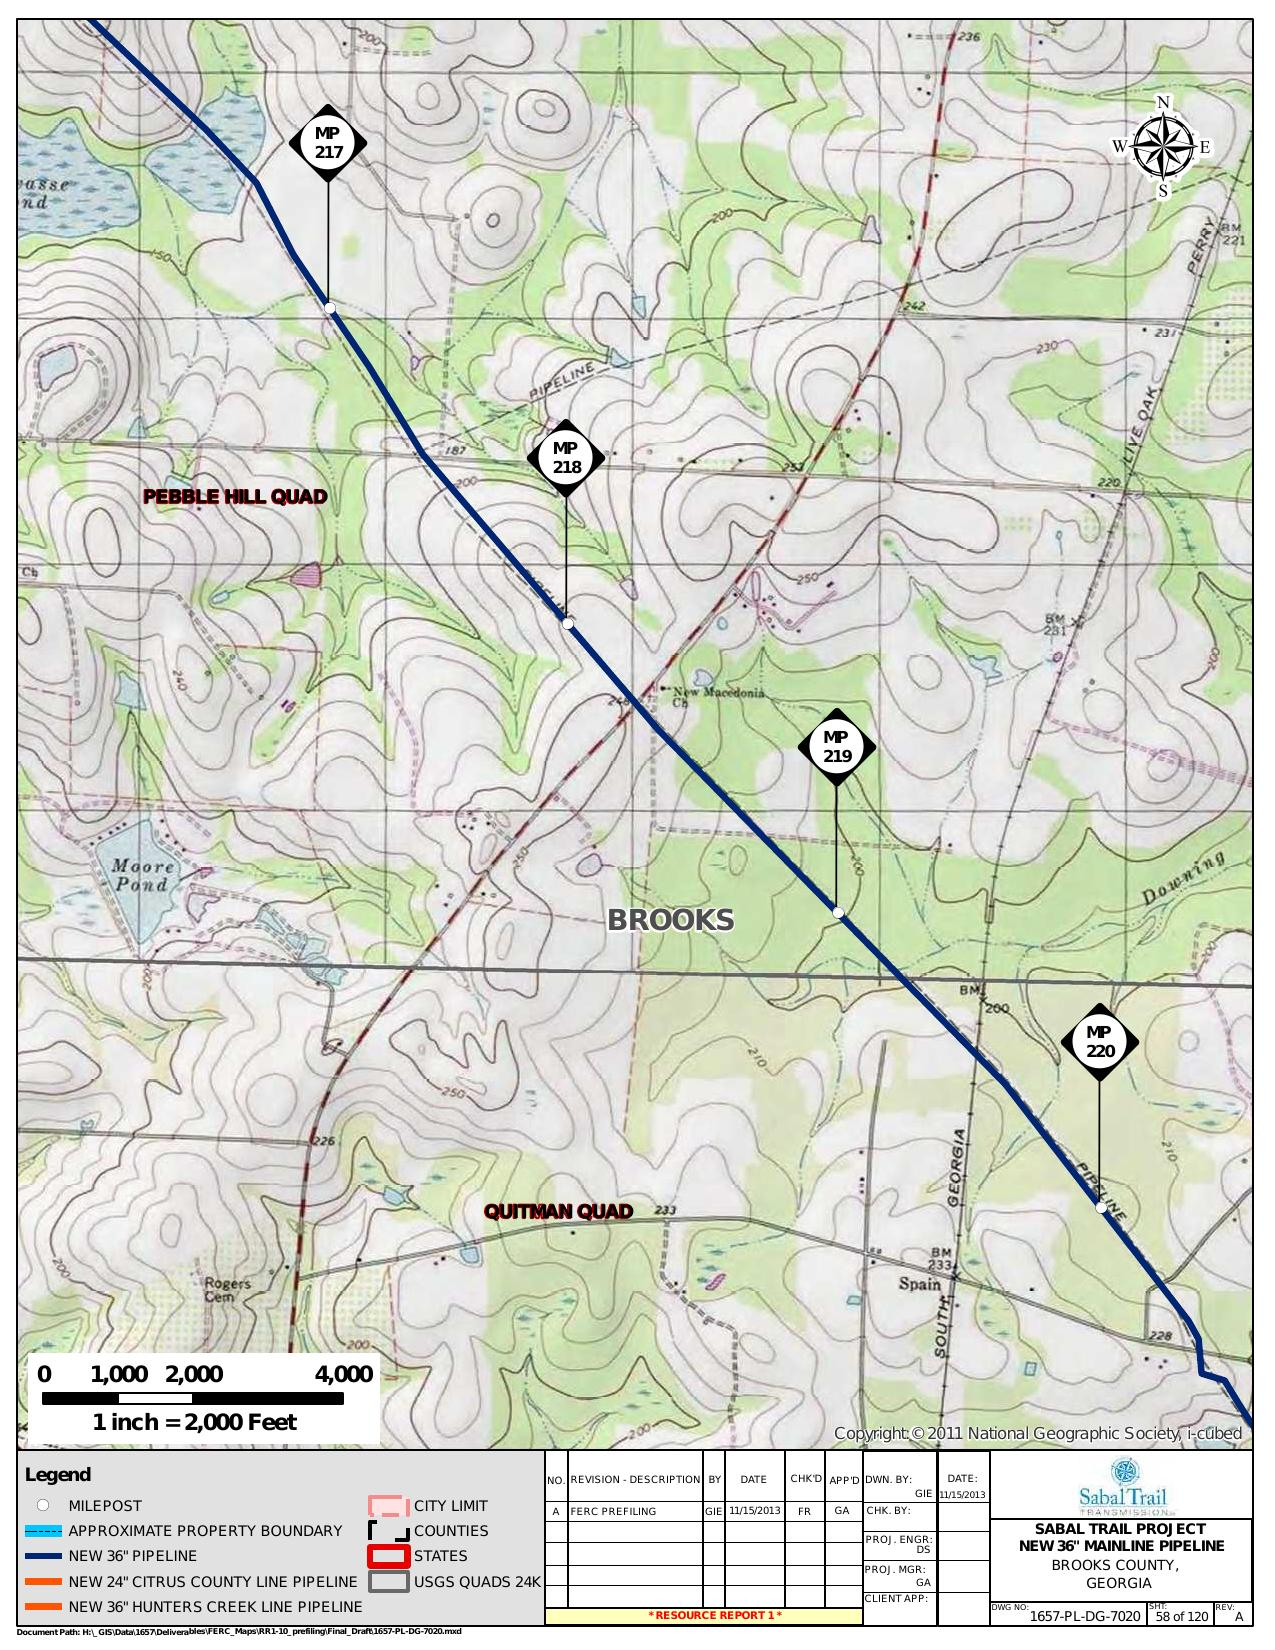 New Macedonia Church and Downing Creek, Brooks County, Georgia, in General Project Description, by SpectraBusters, for FERC Docket No. PF14-1-000, 15 November 2013, converted by SpectraBusters